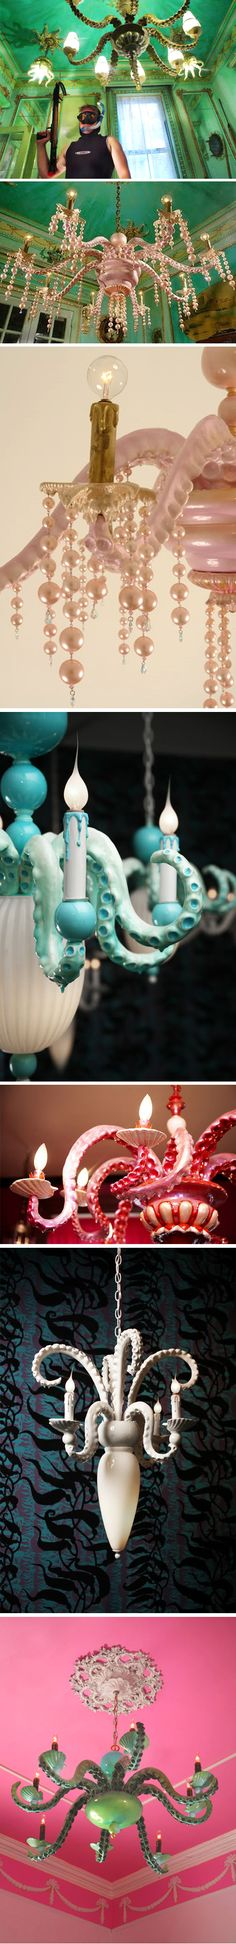 .octopus chandeliers. Love these